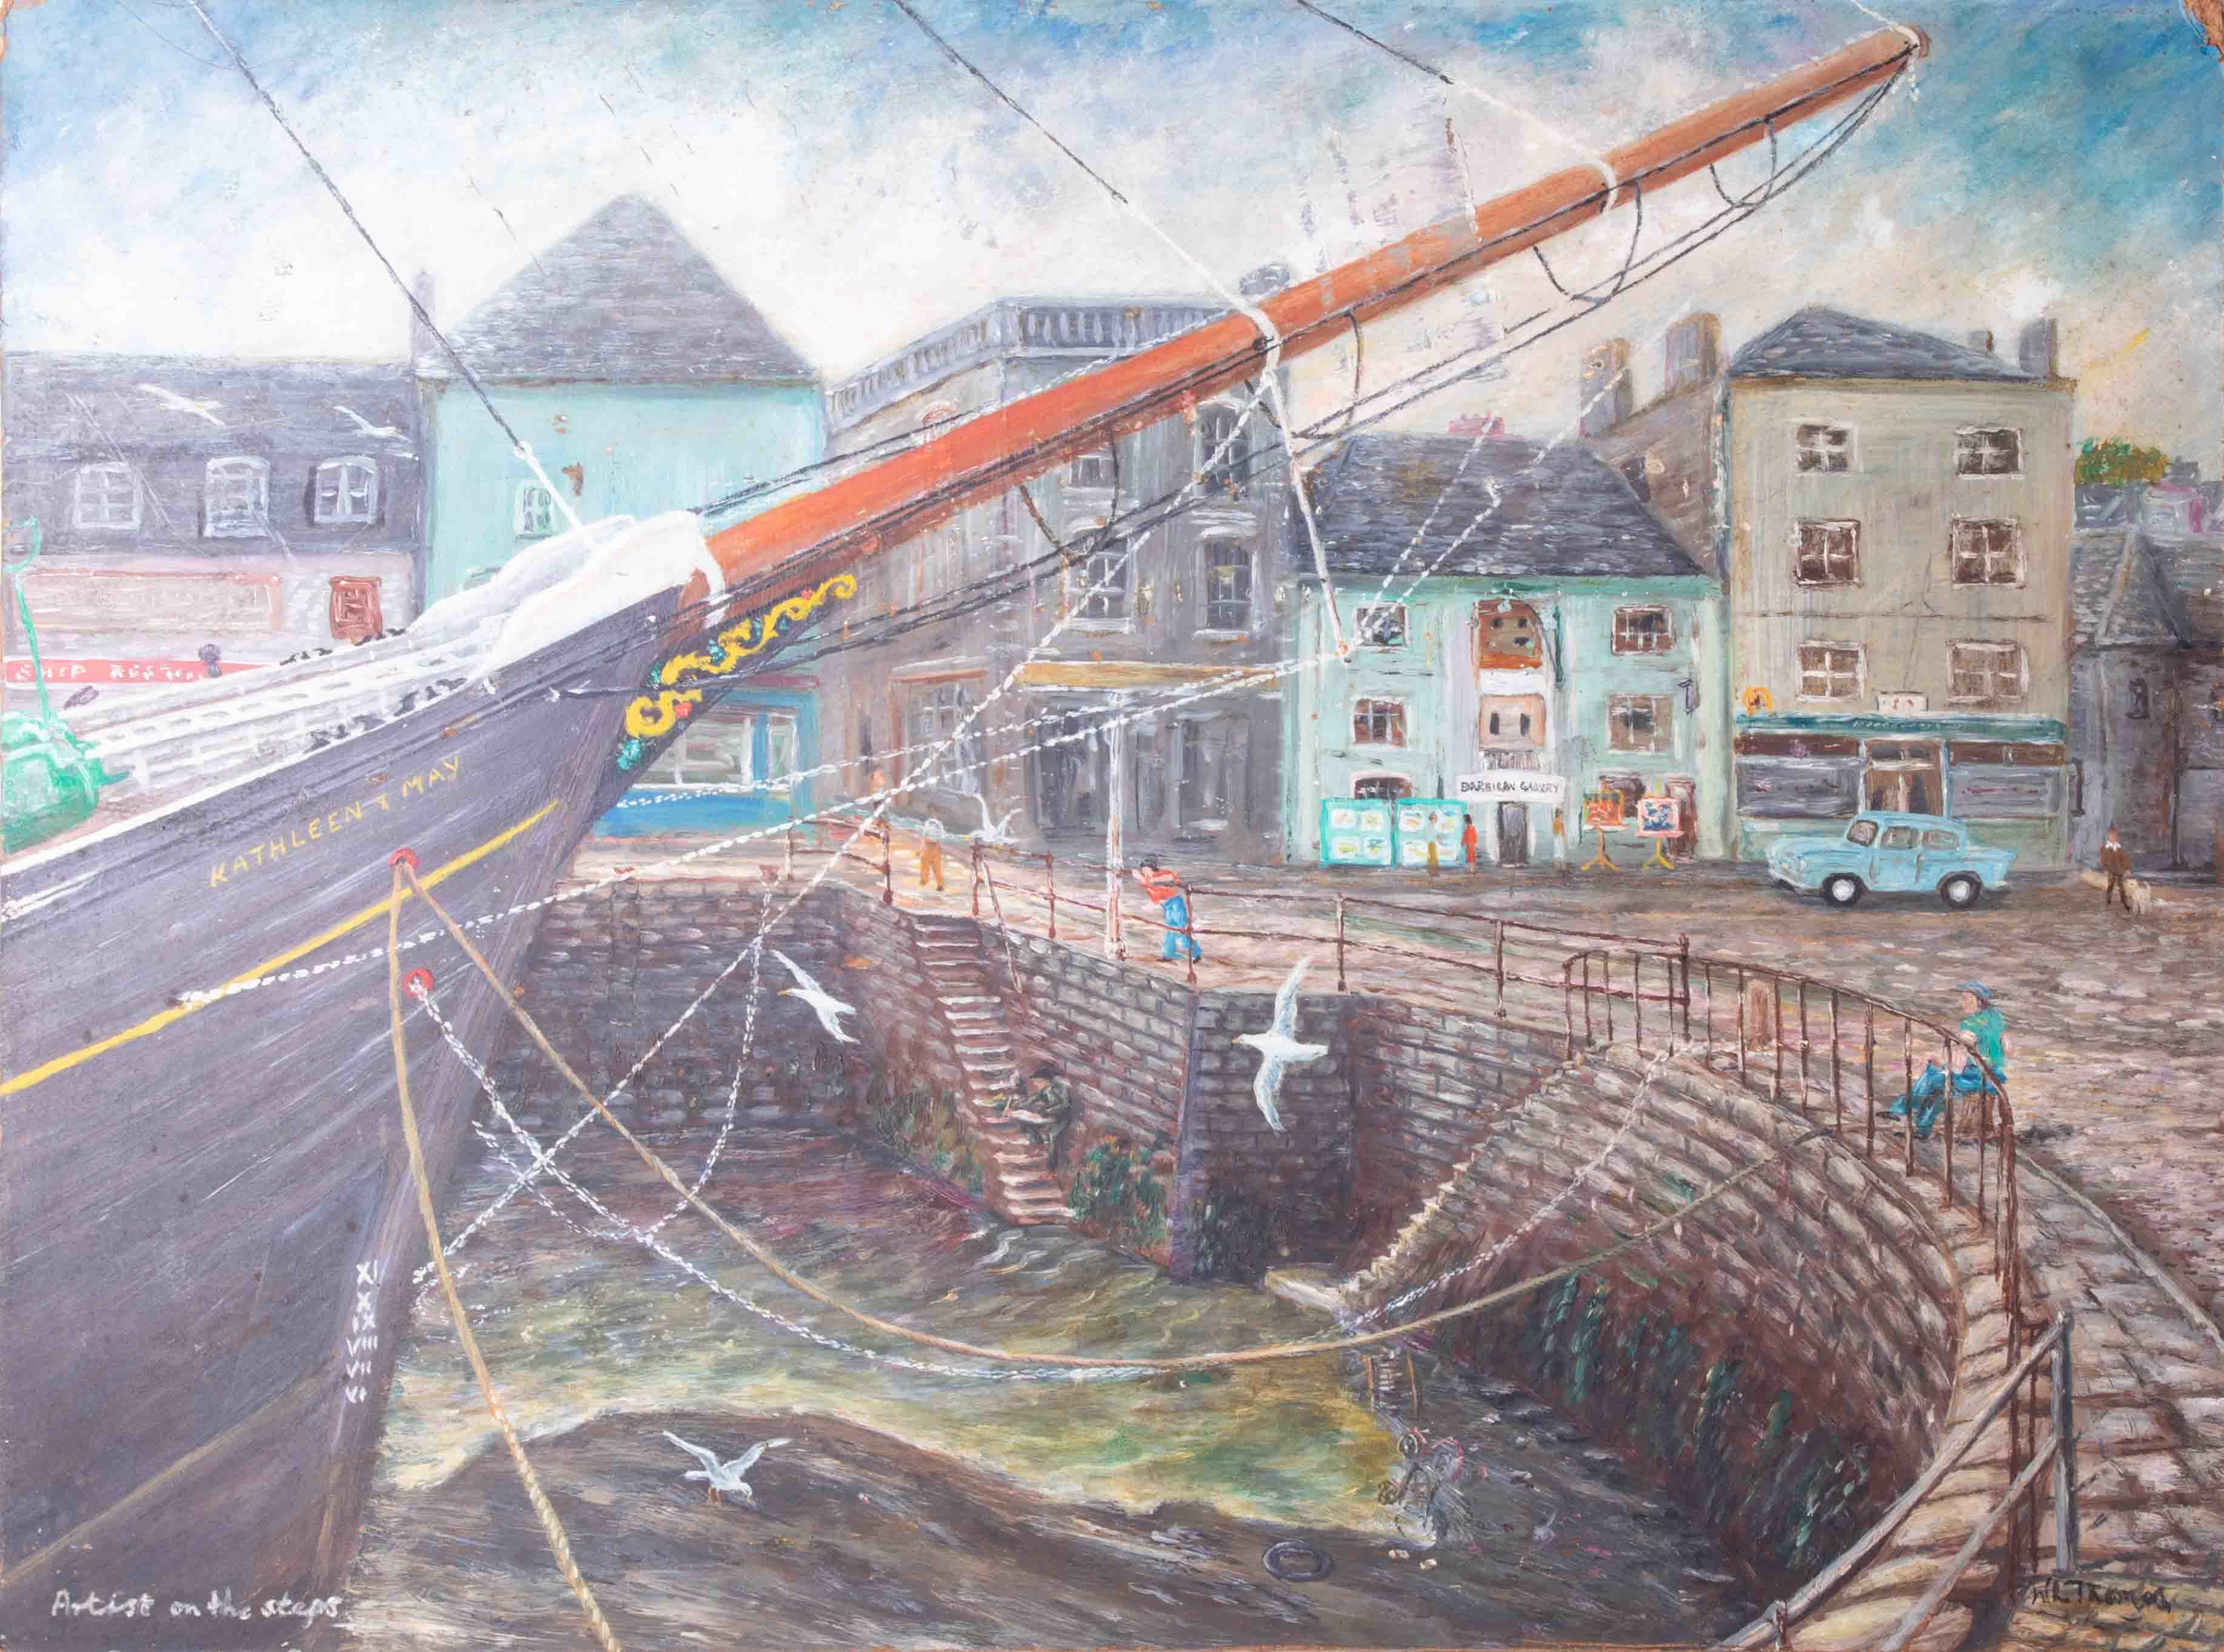 W.L.Thomas, oil on board titled 'Artist On The Steps, Sutton Harbour, Plymouth' also 'Bucky' with - Image 4 of 4